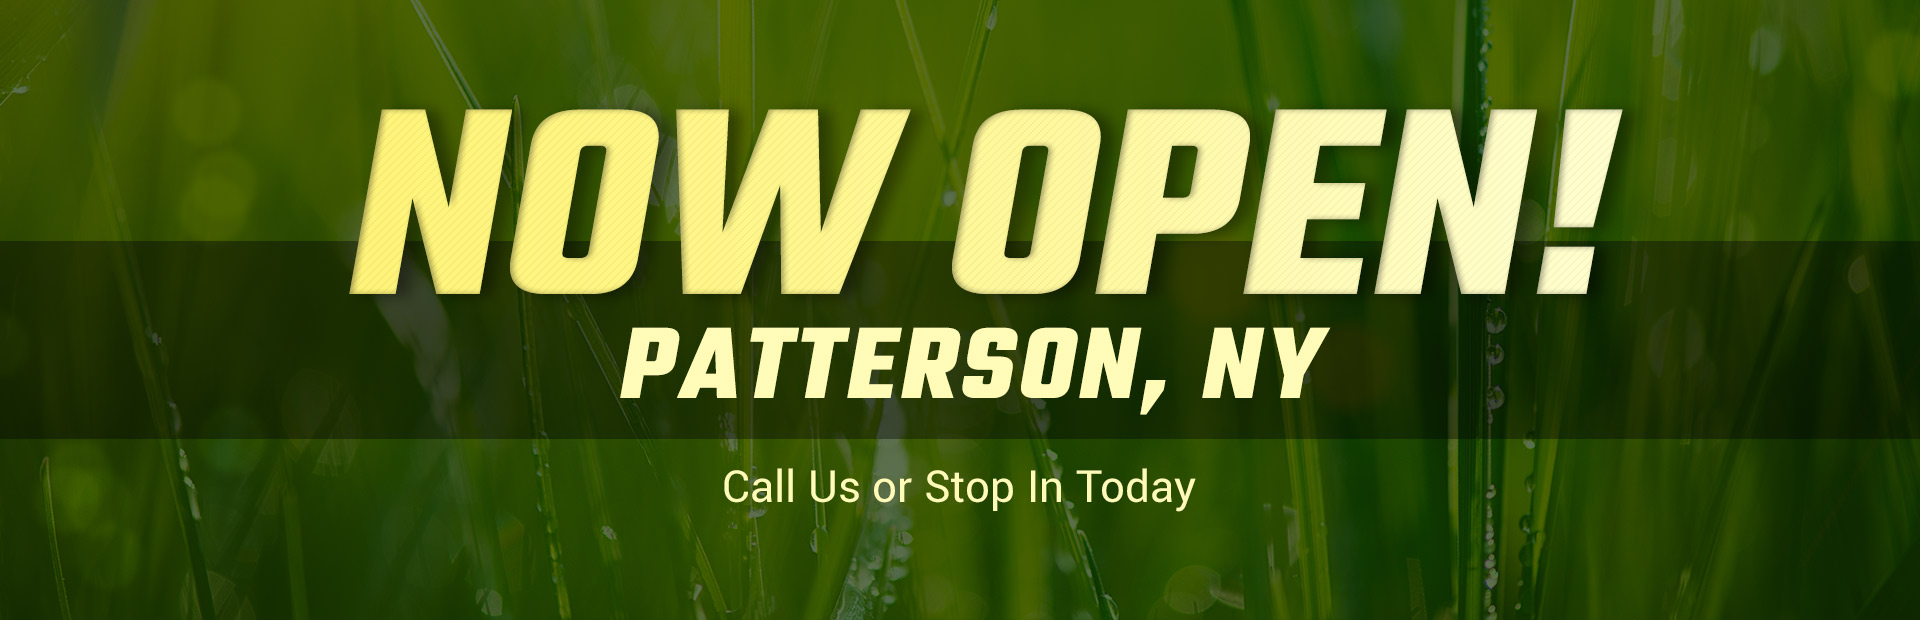 Now open, Patterson, NY! Call us or stop in today